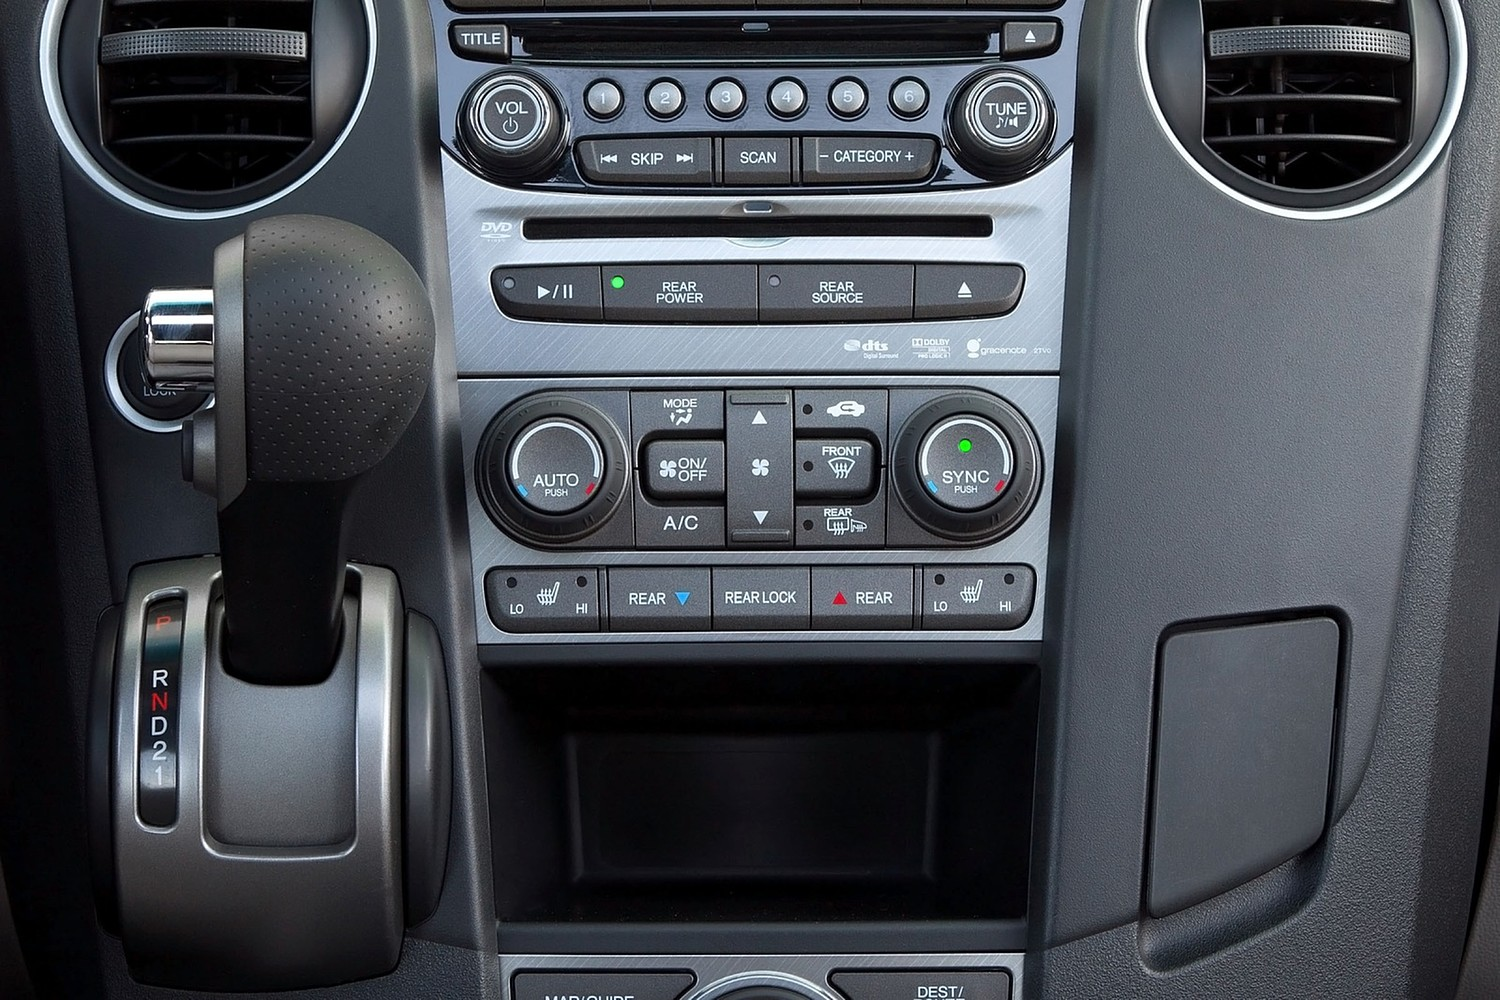 Honda Pilot Touring 4dr SUV Center Console (2013 model year shown)